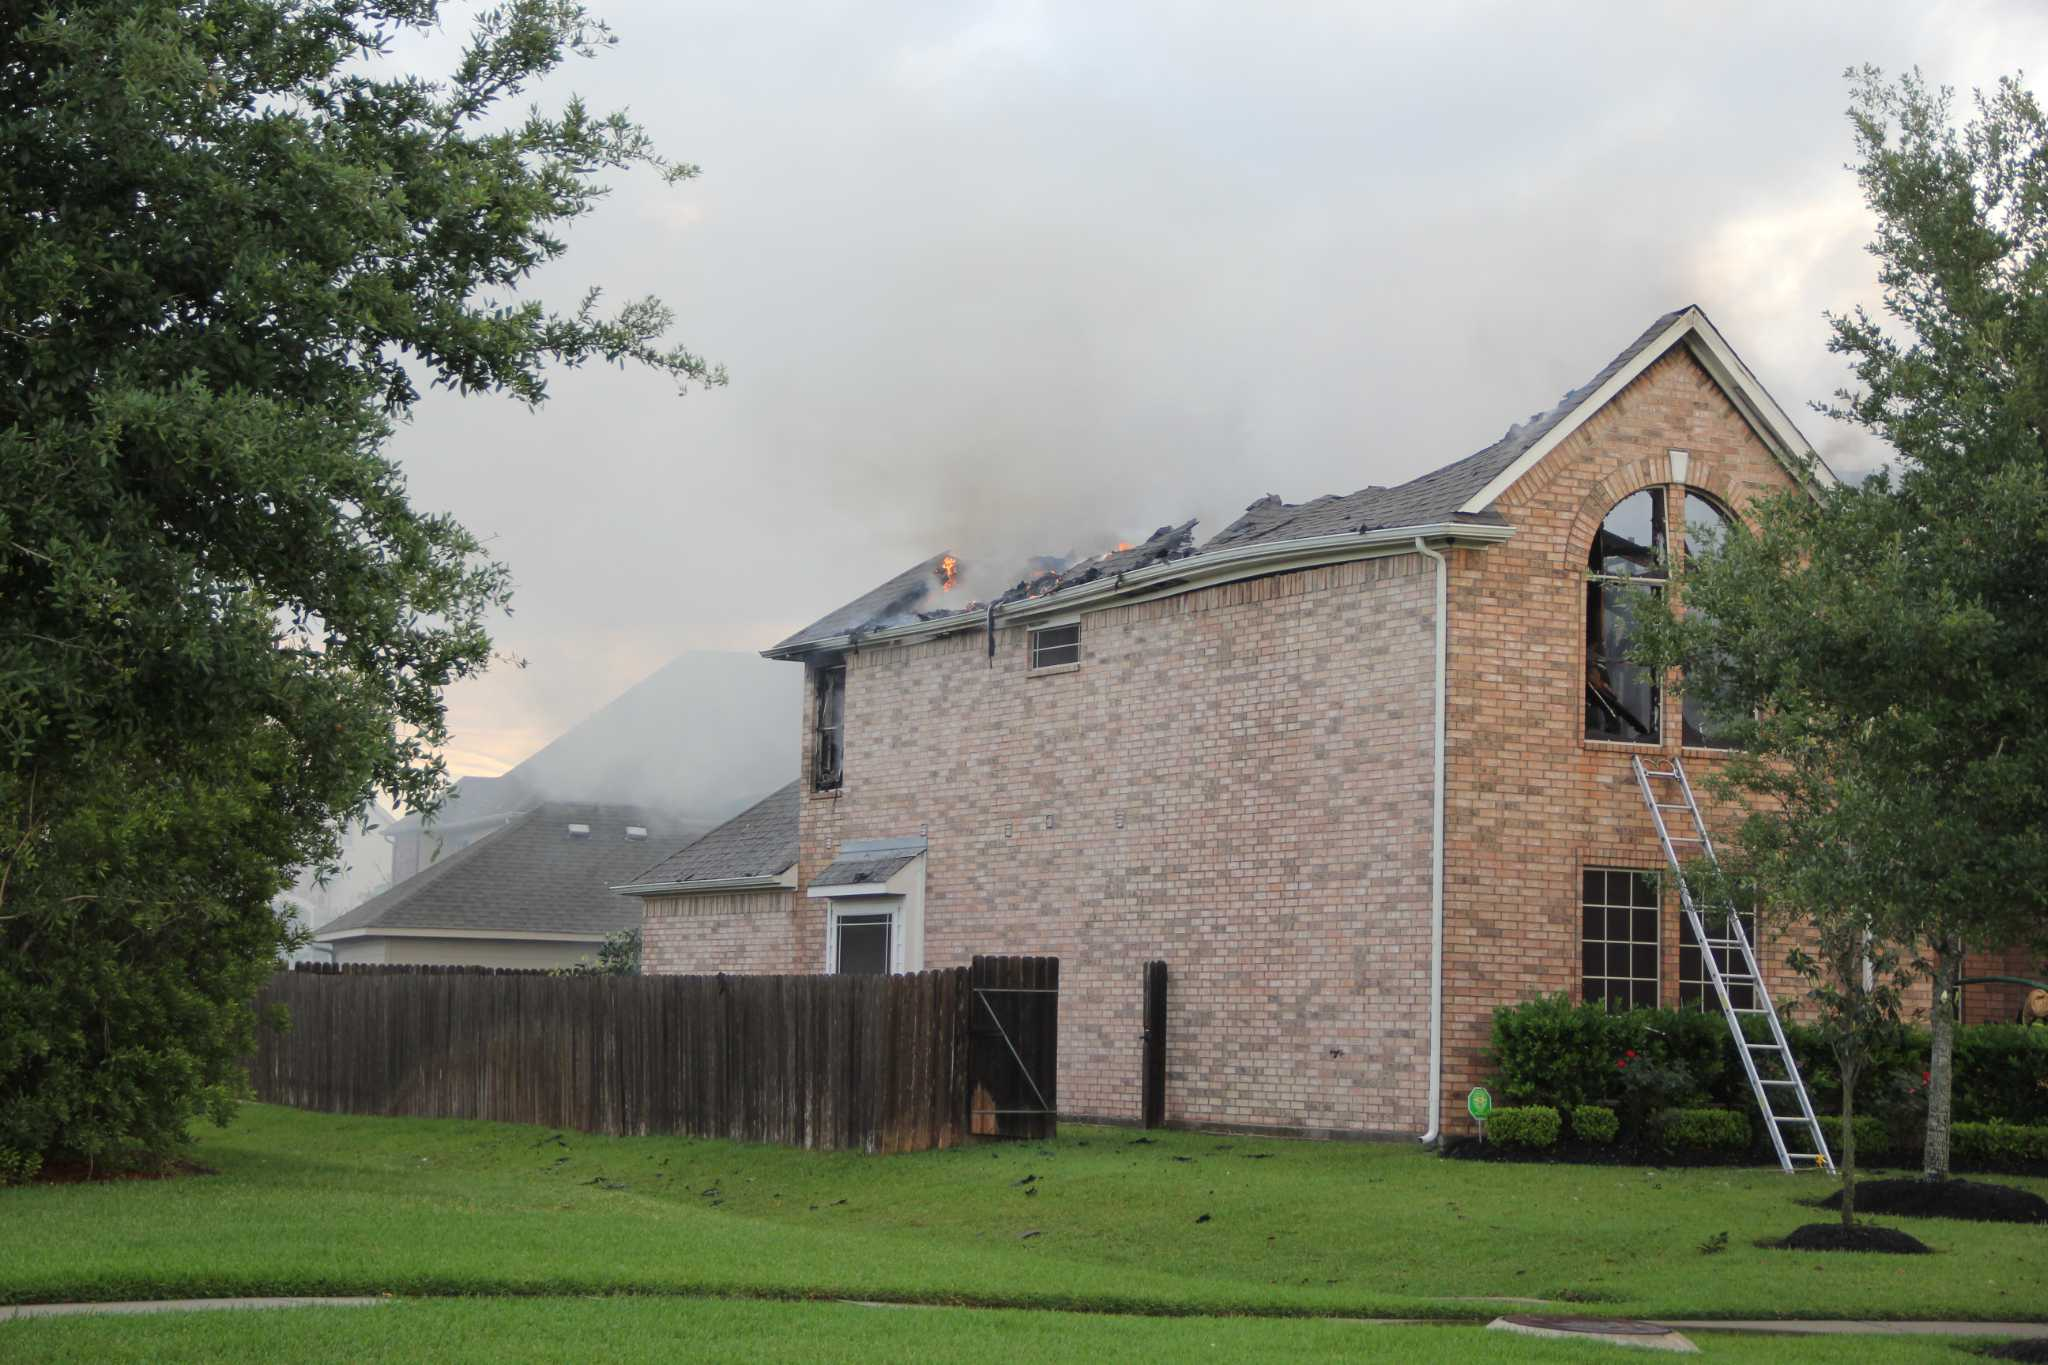 Best Kitchen Gallery: Lakes Of Savannah Residents Upset Over Lack Of Fire Ems Services In of Dream House In Houston Ems on rachelxblog.com